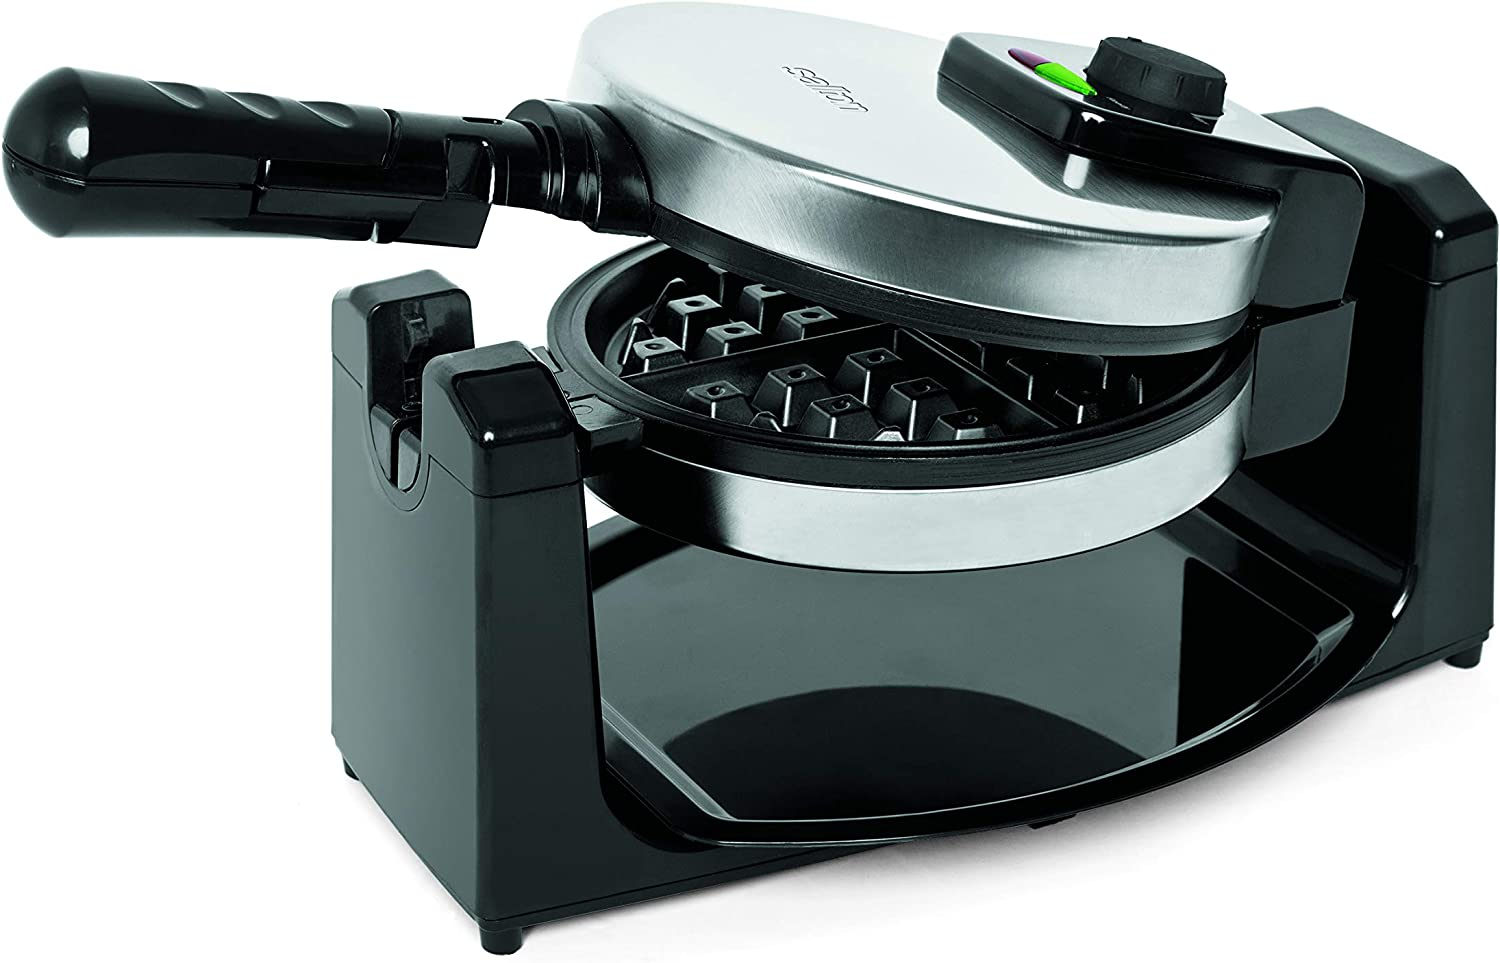 Salton Rotary Recommended Max 74% OFF Waffle Maker 5 kg Steel Stainless Black